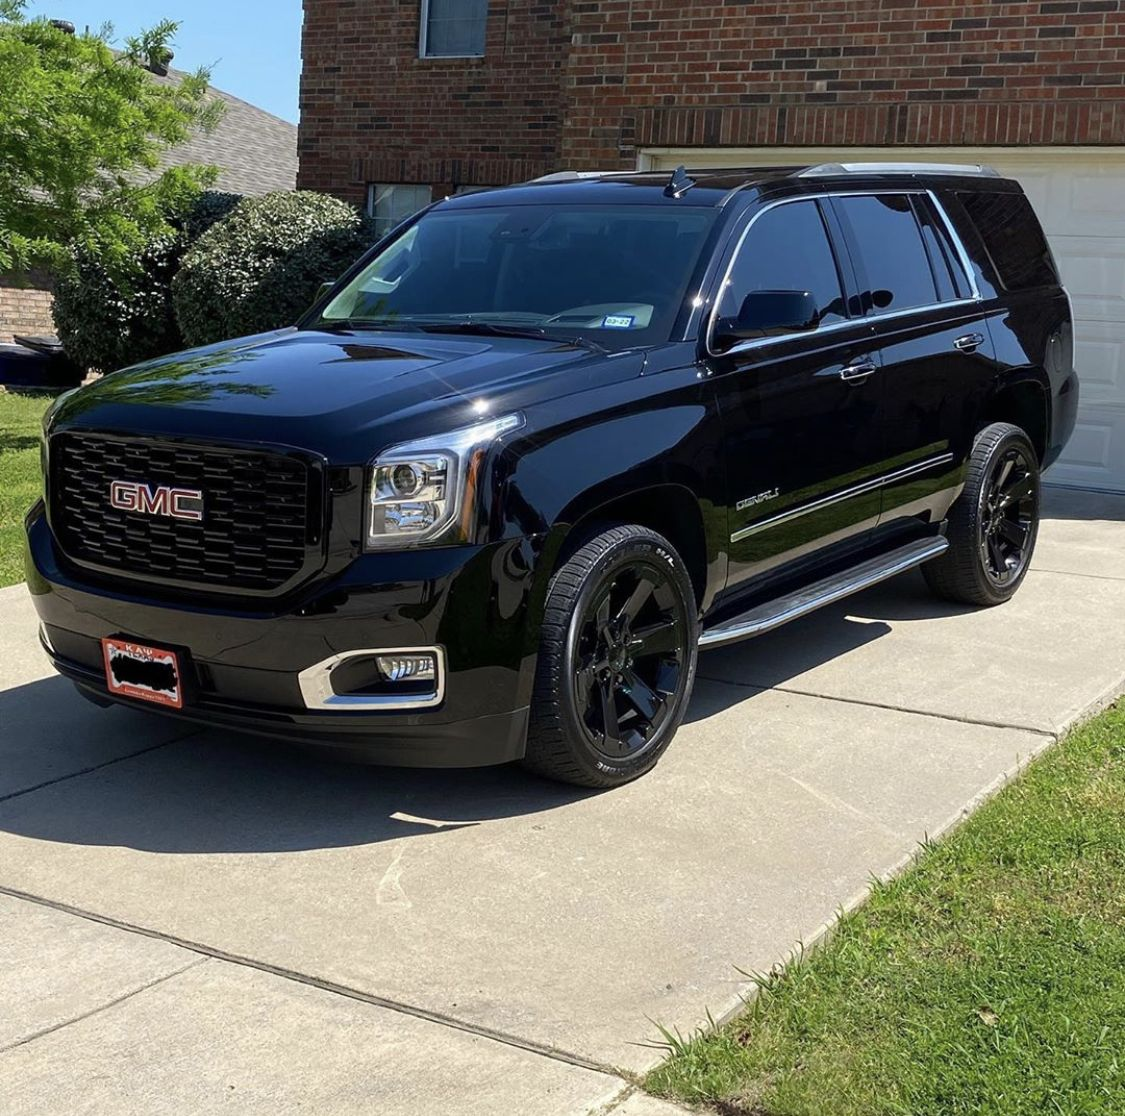 Pin By Joey Ball On Yukon Denali Goals In 2020 Gmc Yukon Xl Gmc Yukon Denali Yukon Denali